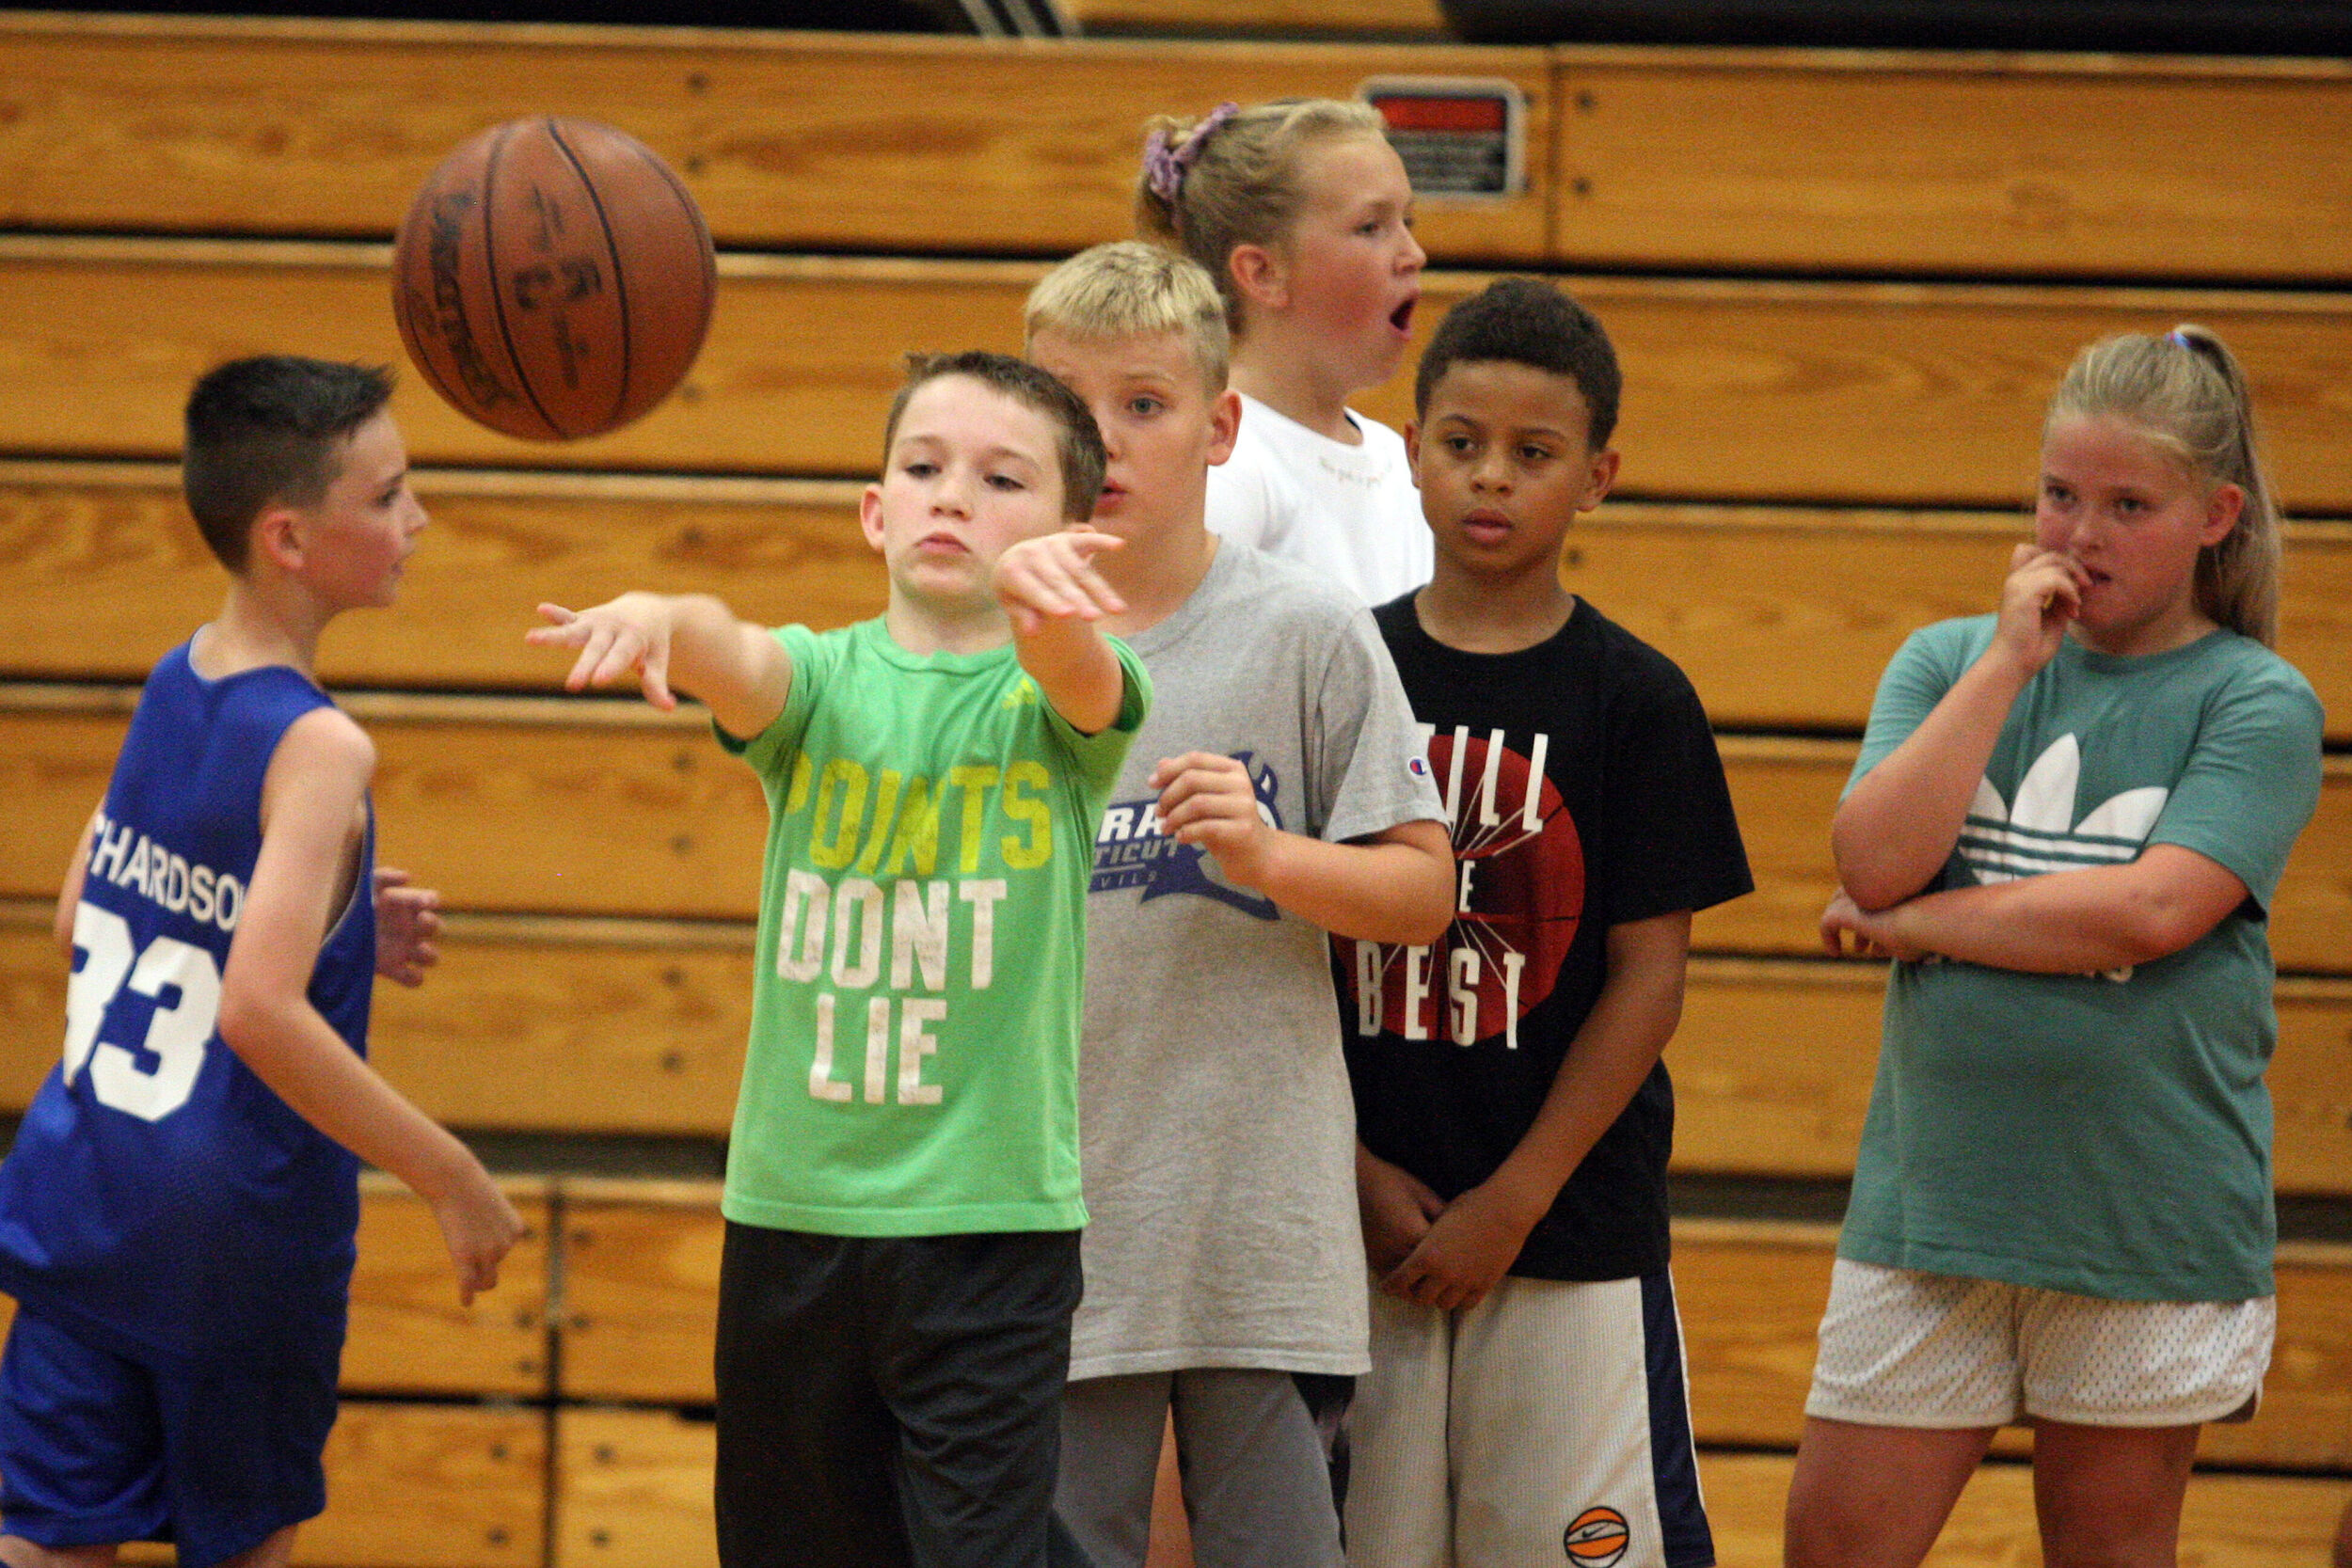 Youth sports can be played in Maine counties...